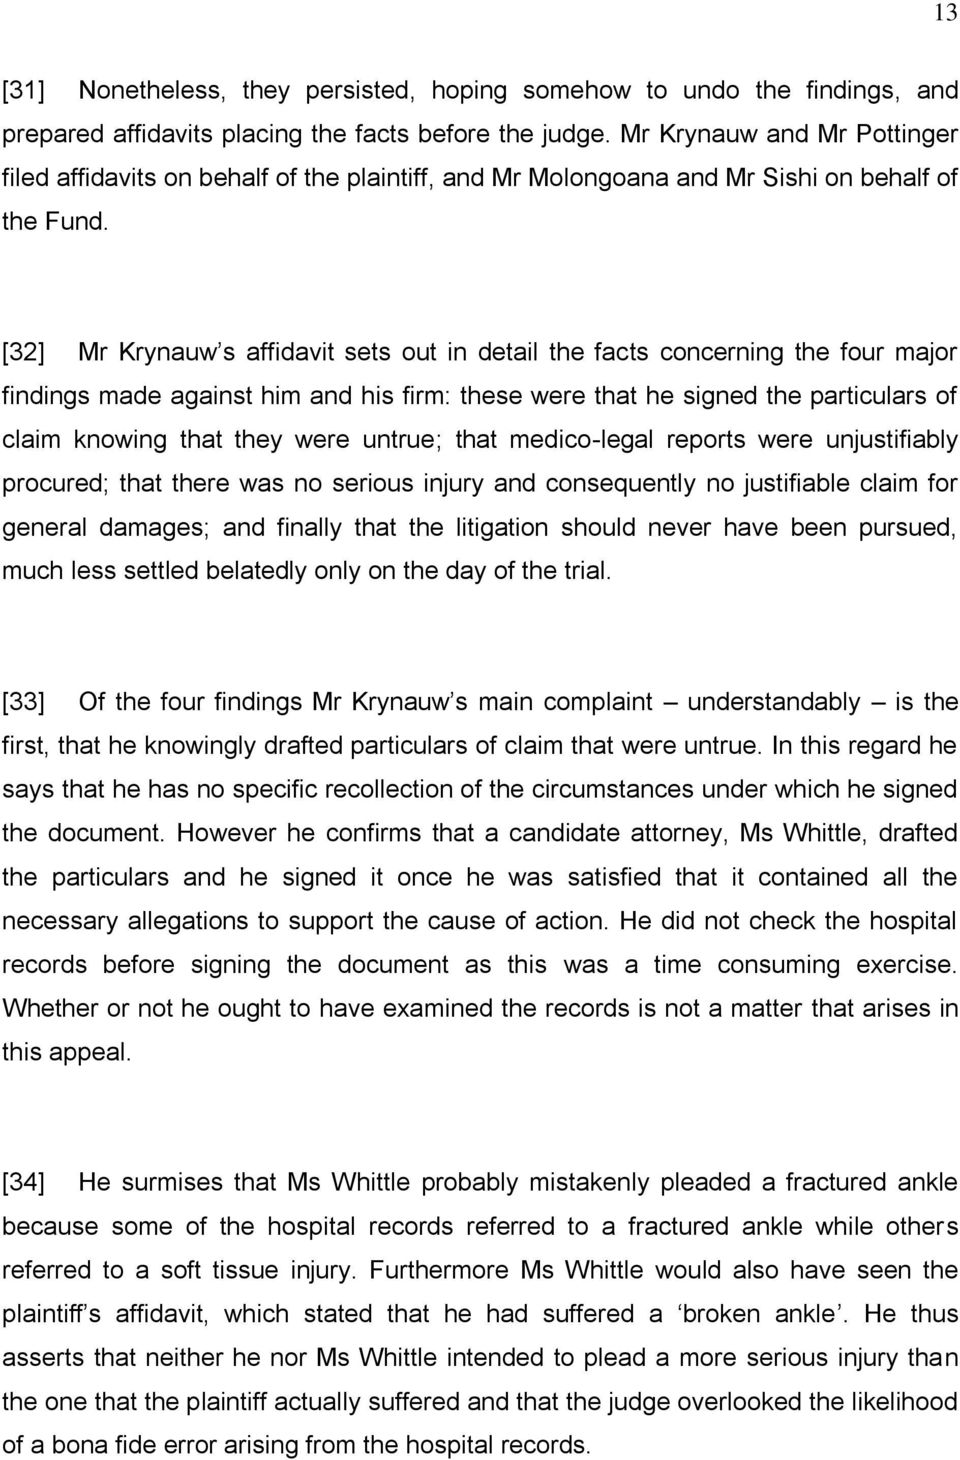 [32] Mr Krynauw s affidavit sets out in detail the facts concerning the four major findings made against him and his firm: these were that he signed the particulars of claim knowing that they were